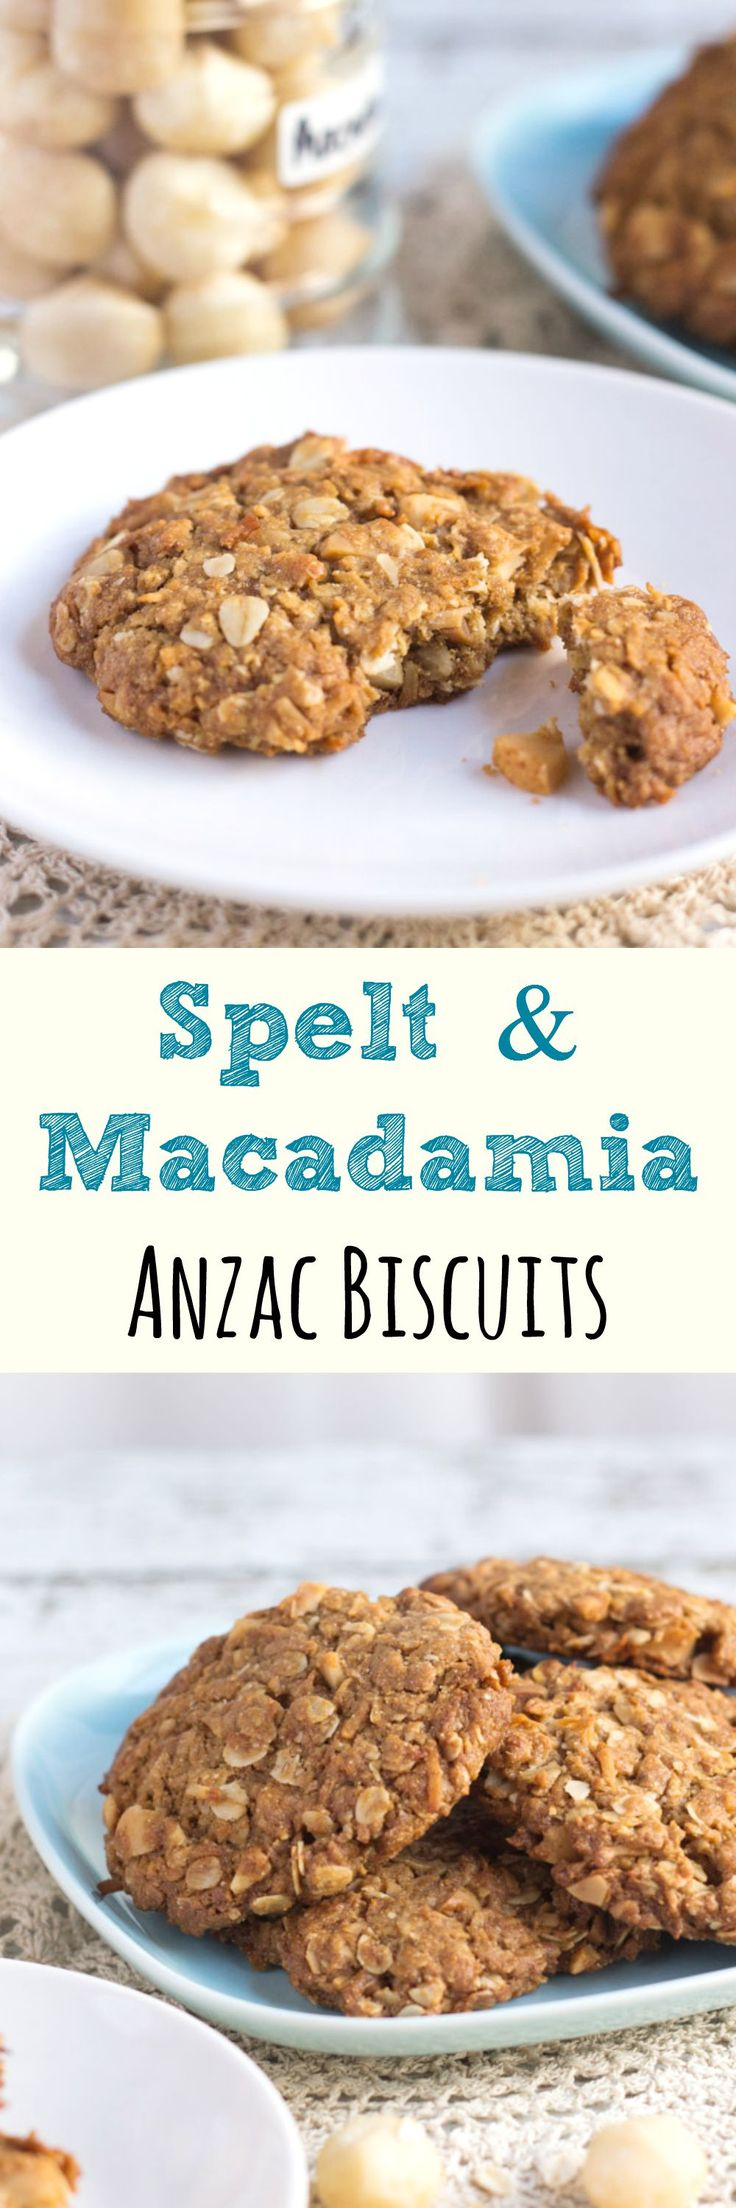 These Spelt and Macadamia Anzac Biscuits contain less sugar than the traditional recipe, and have the addition of wholemeal spelt and crunchy macadamias.